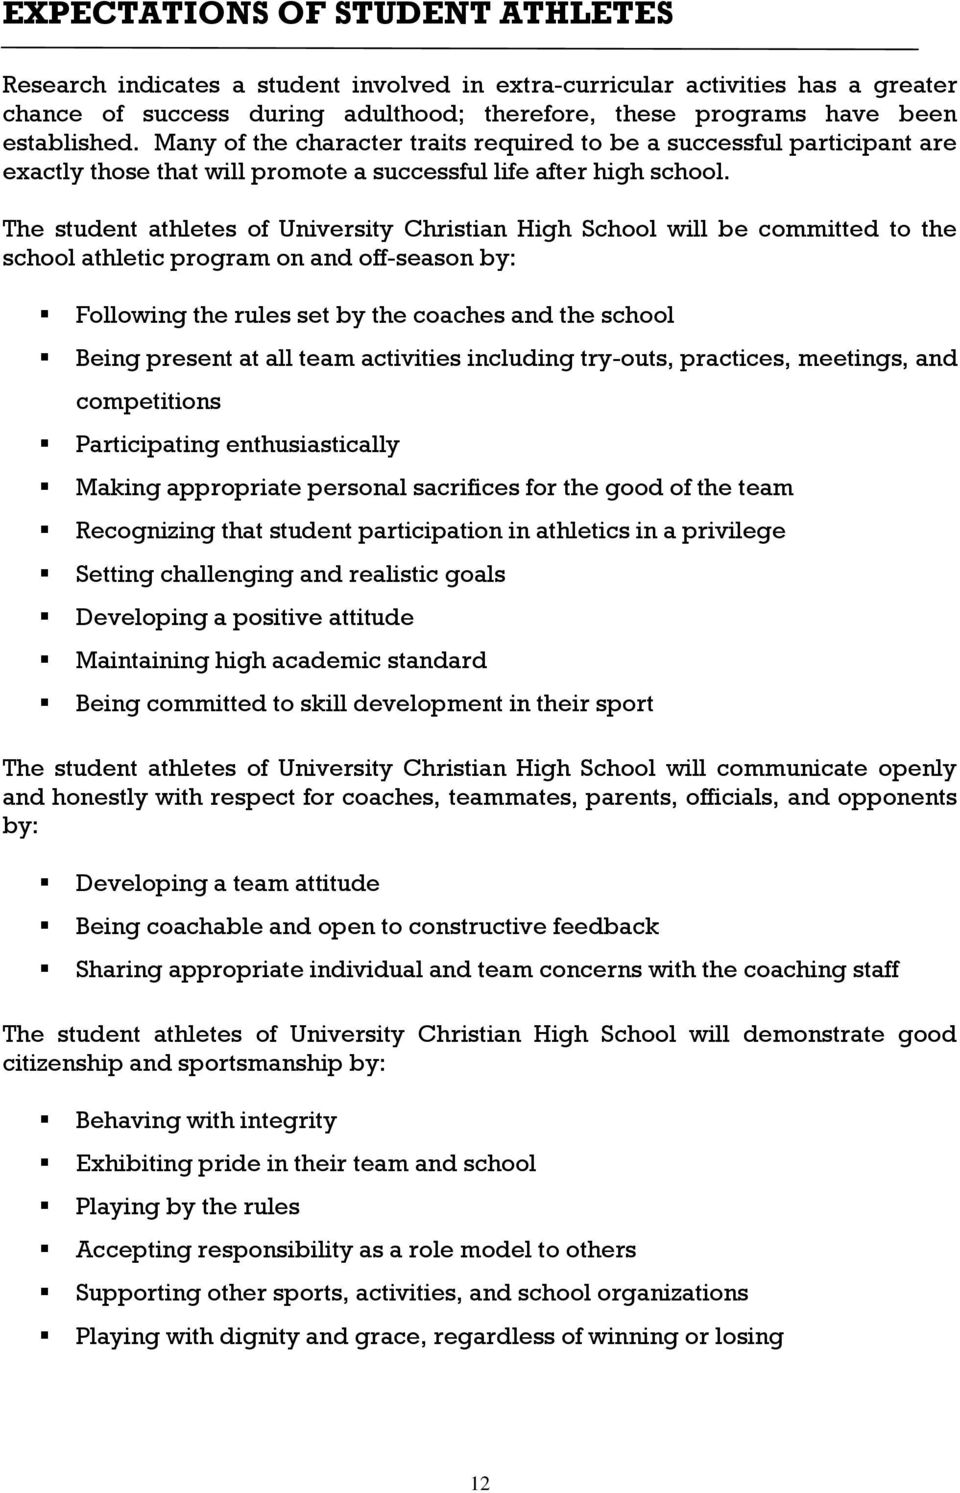 The student athletes of University Christian High School will be committed to the school athletic program on and off-season by: Following the rules set by the coaches and the school Being present at